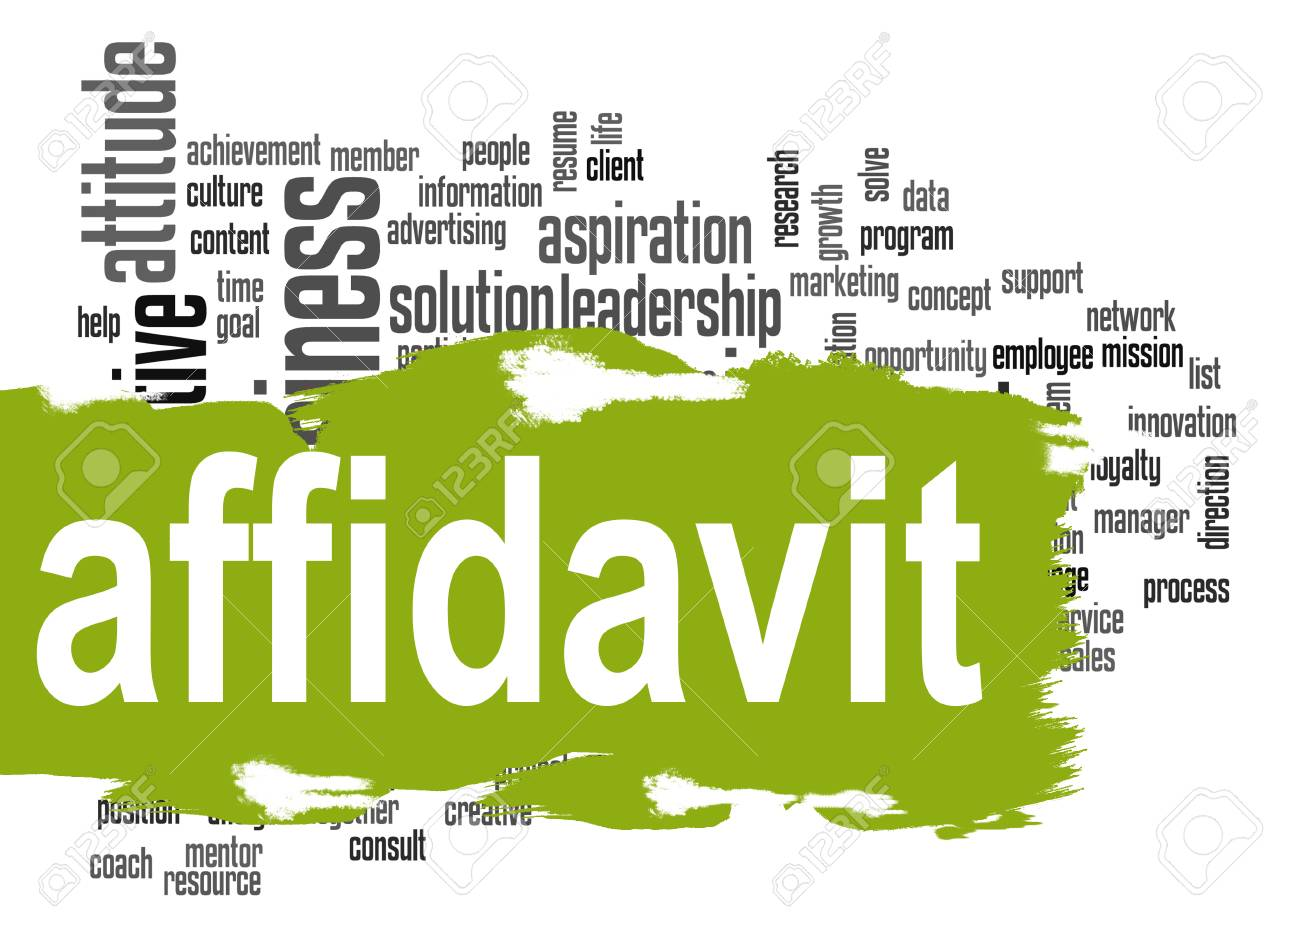 Affidavit word cloud with green banner image with hi-res rendered